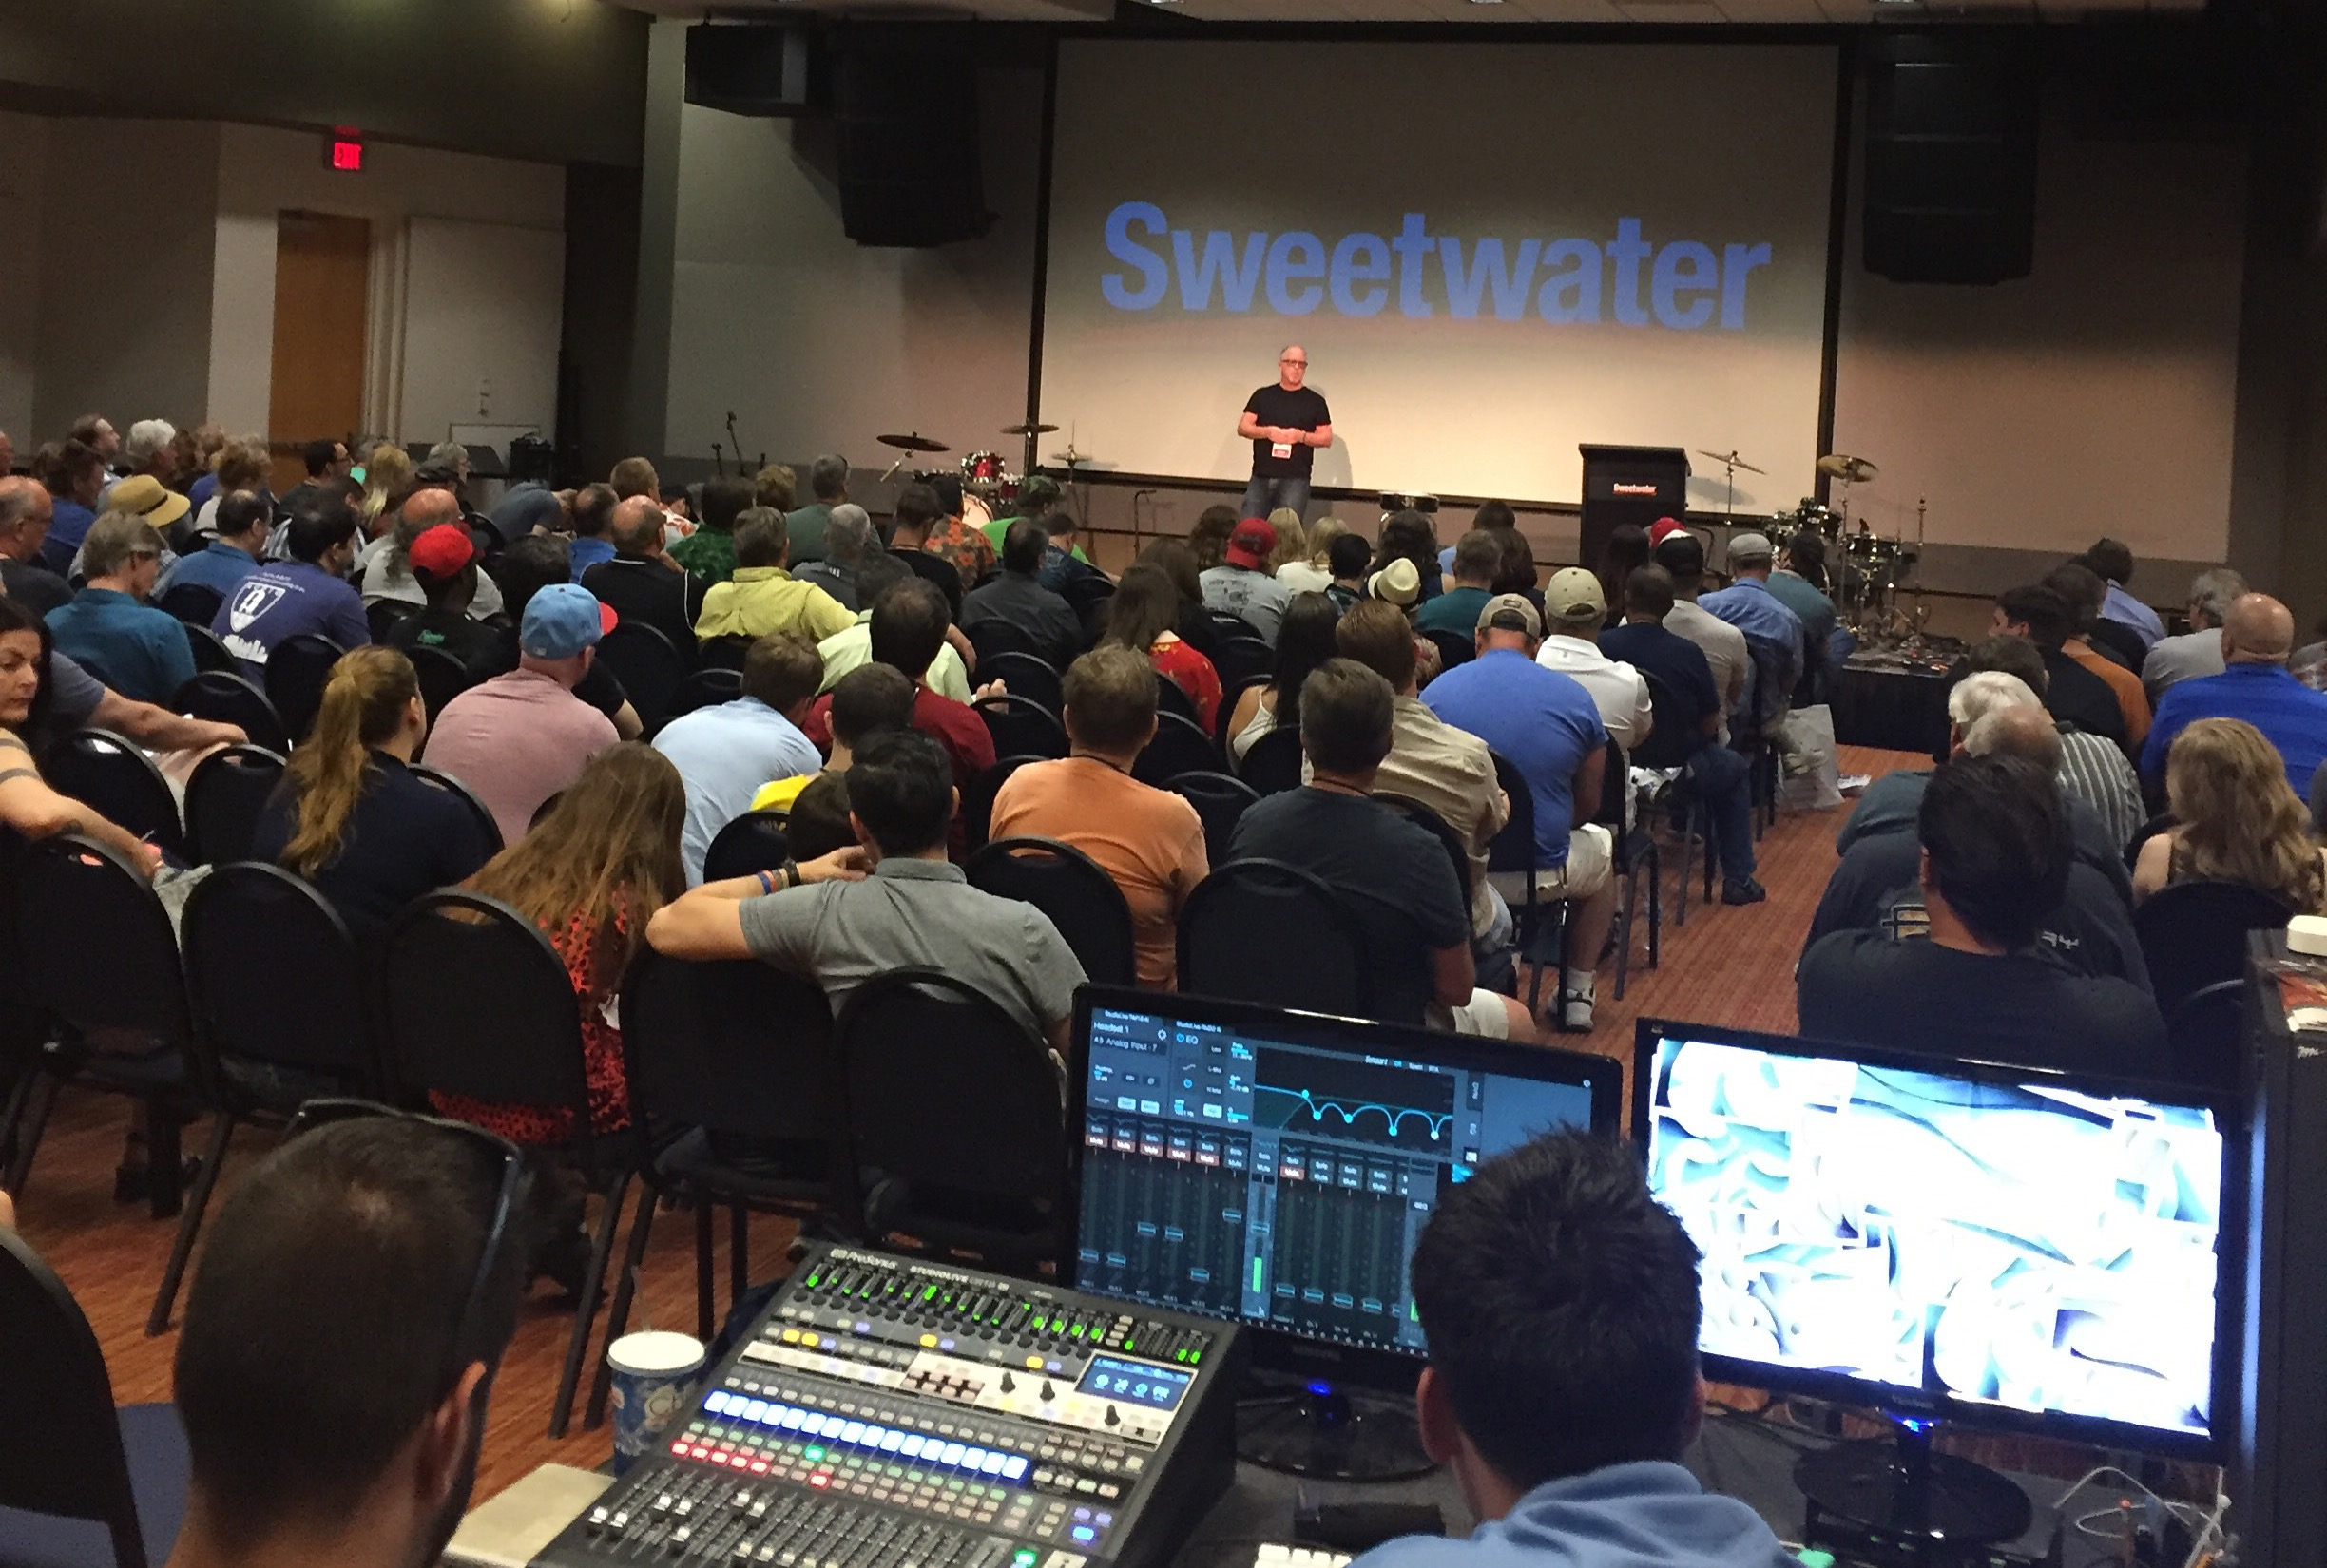 iDoCoach Sweetwater Workshop 6/18/16